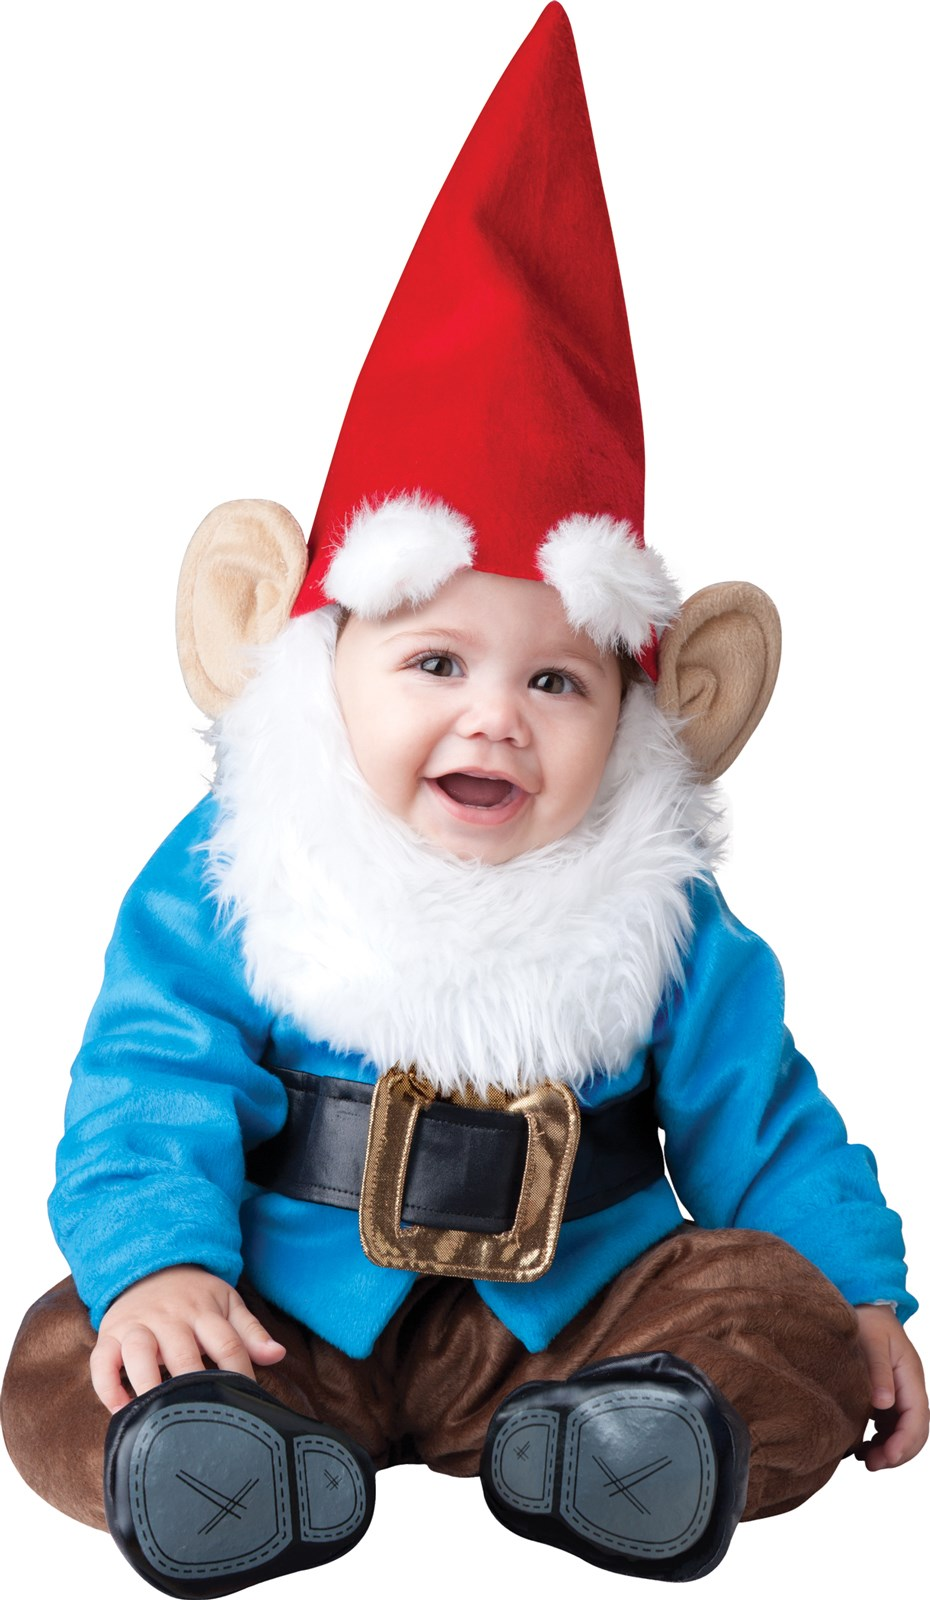 Little Garden Gnome Infant / Toddler Costume 12-18 Months